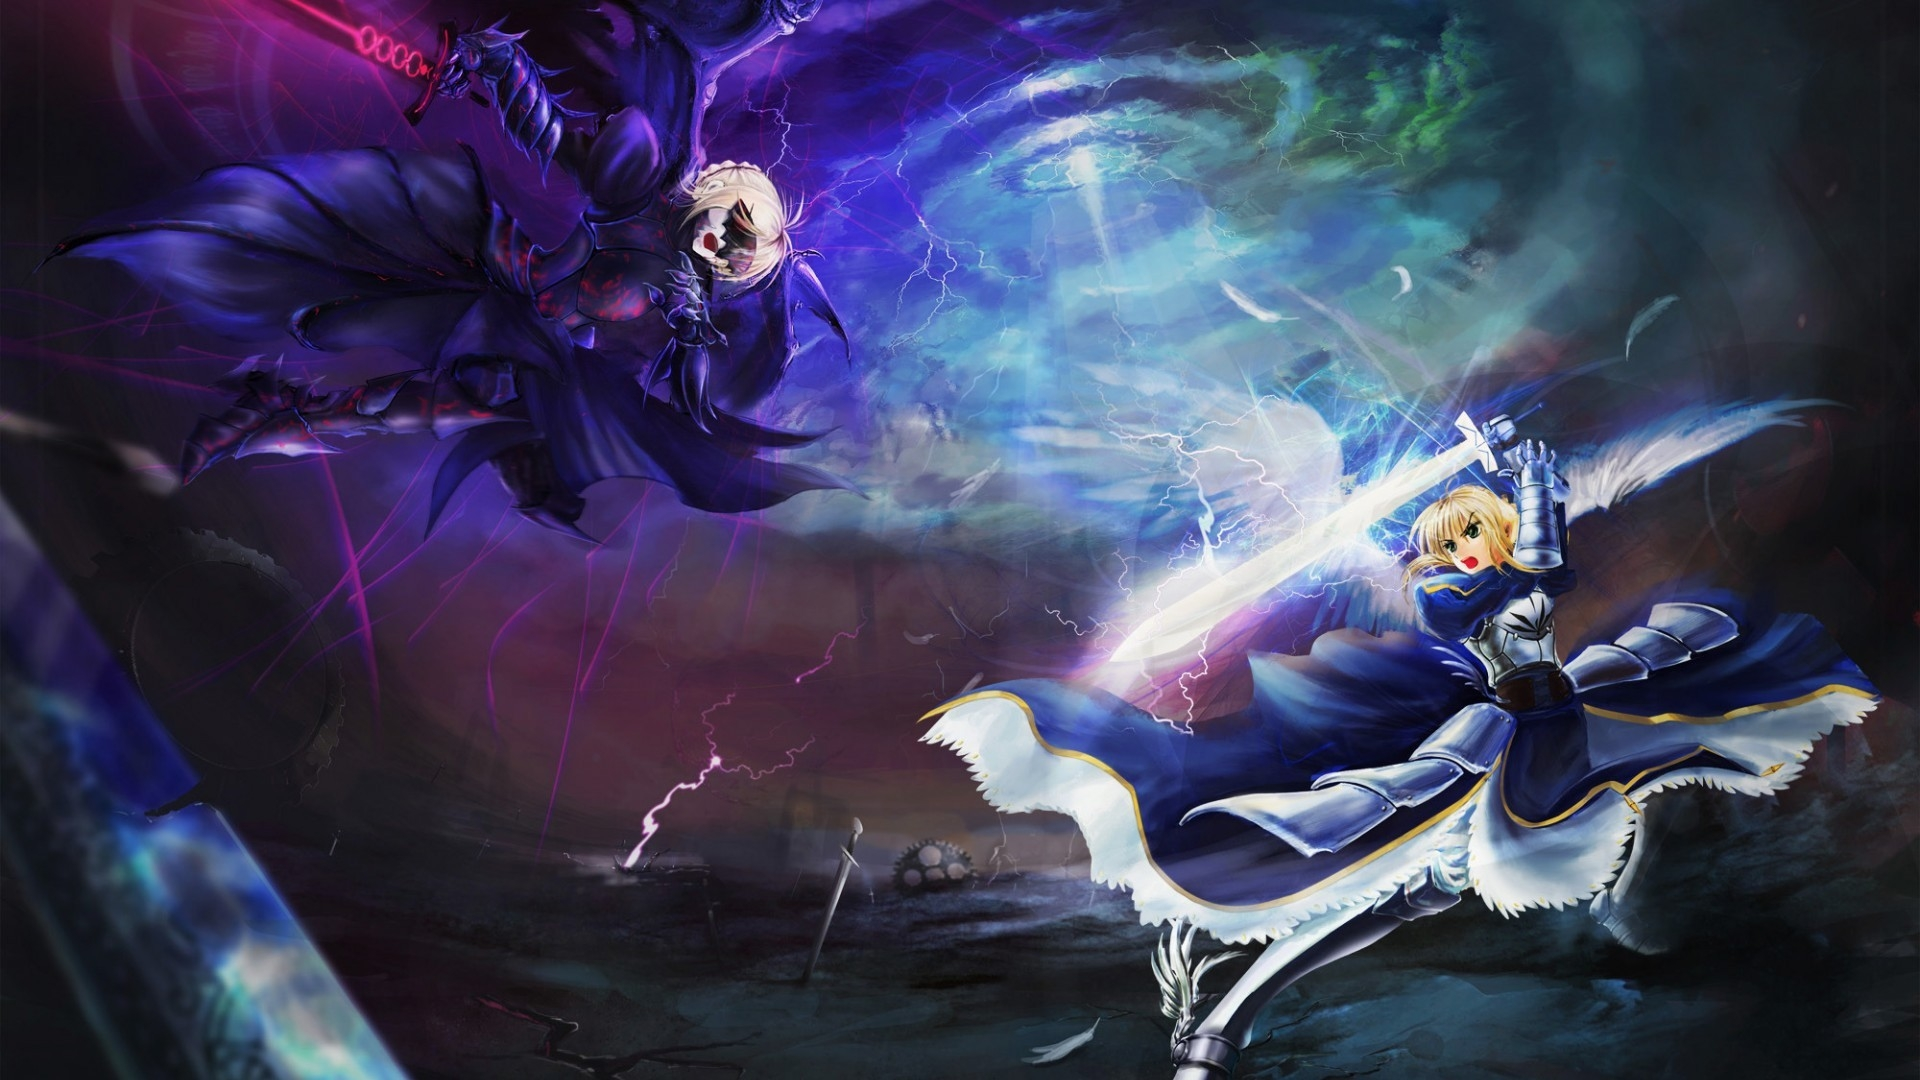 Fate Stay Night Fight Hd Wallpaper Wallpaperfx